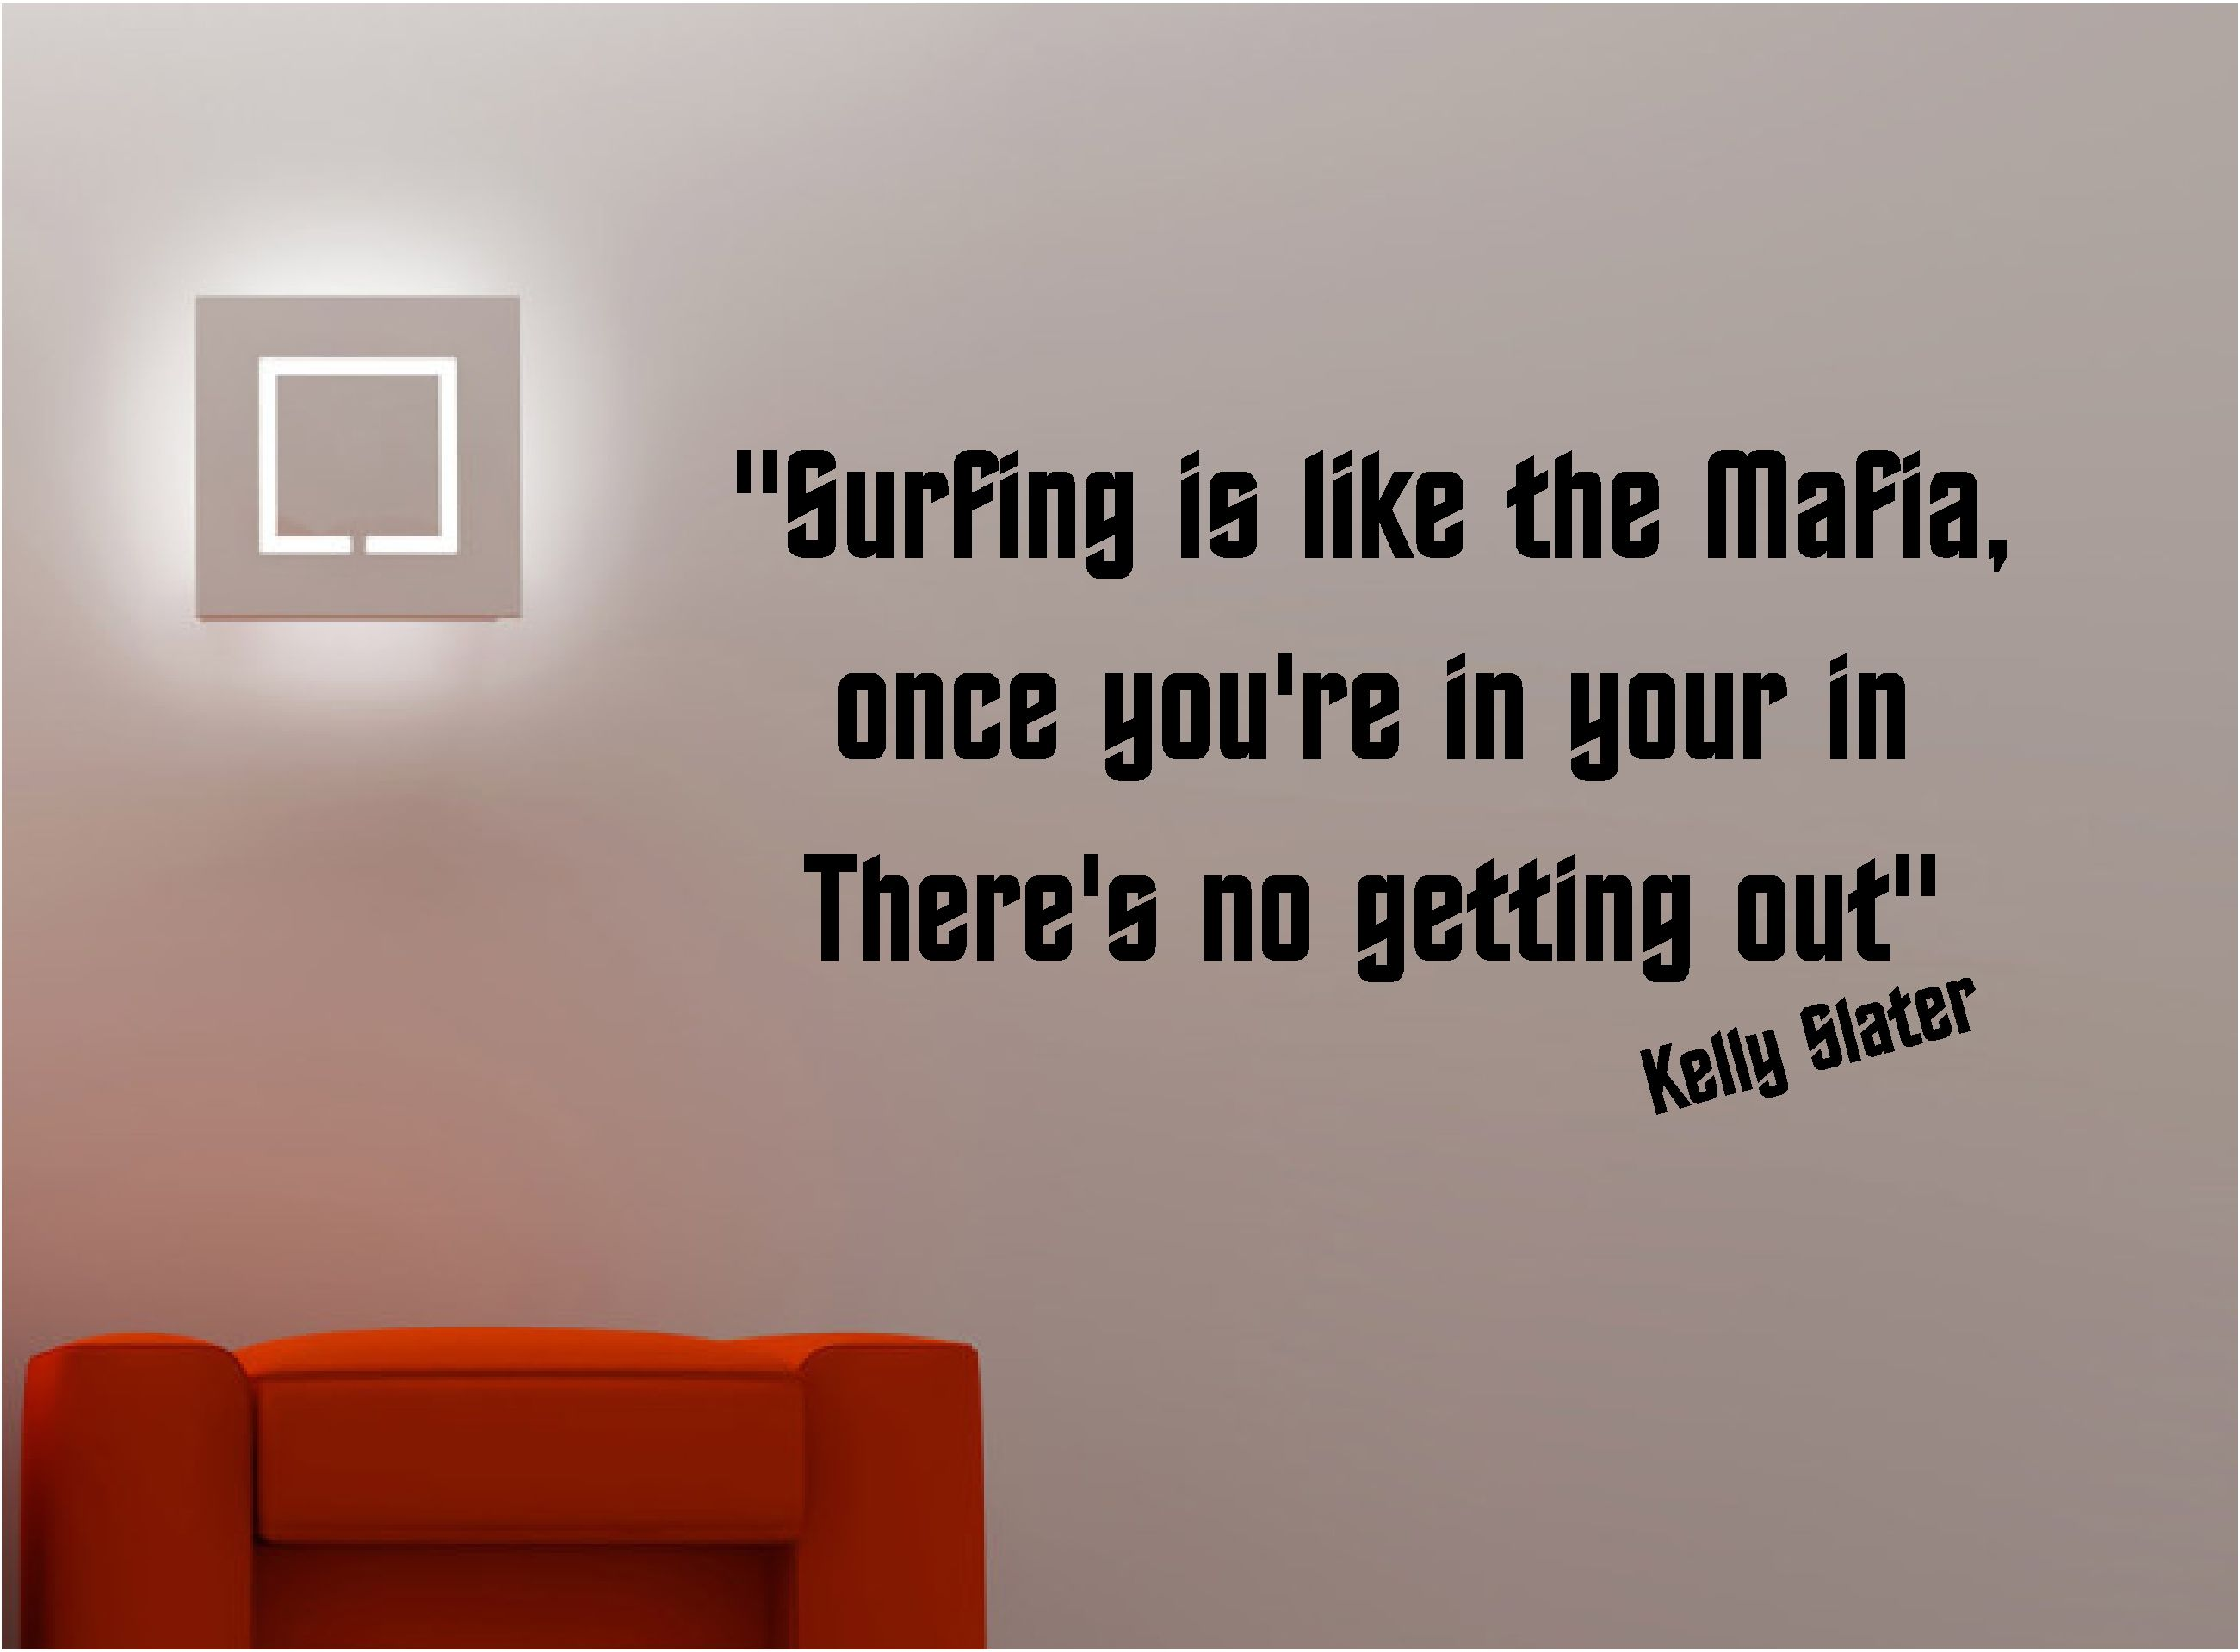 Kelly slater surfing mafia wall art sticker vinyl quote surf kelly slater surfing mafia wall art sticker vinyl quote surf lounge kitchen amipublicfo Gallery